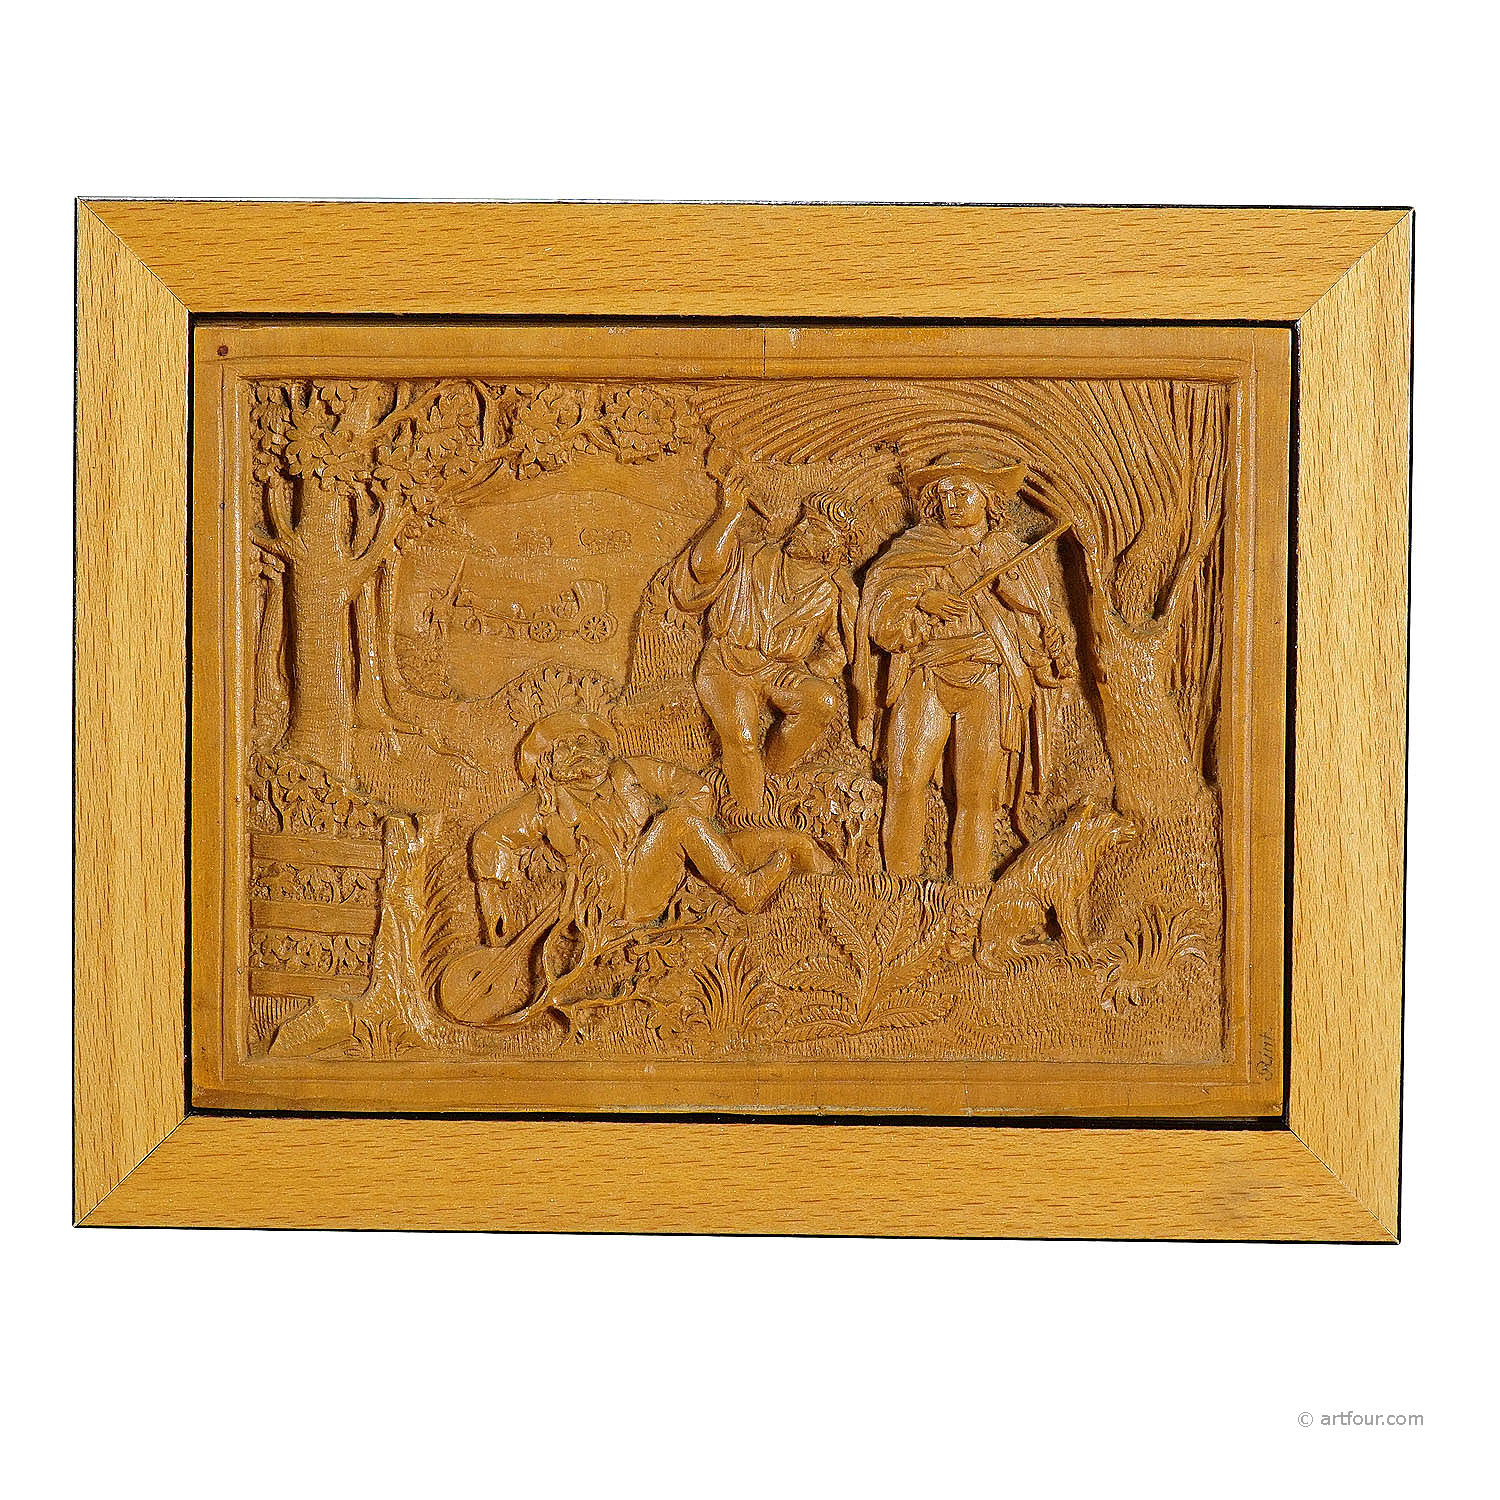 a wooden micro carving plaque by johann rint ca. 1880